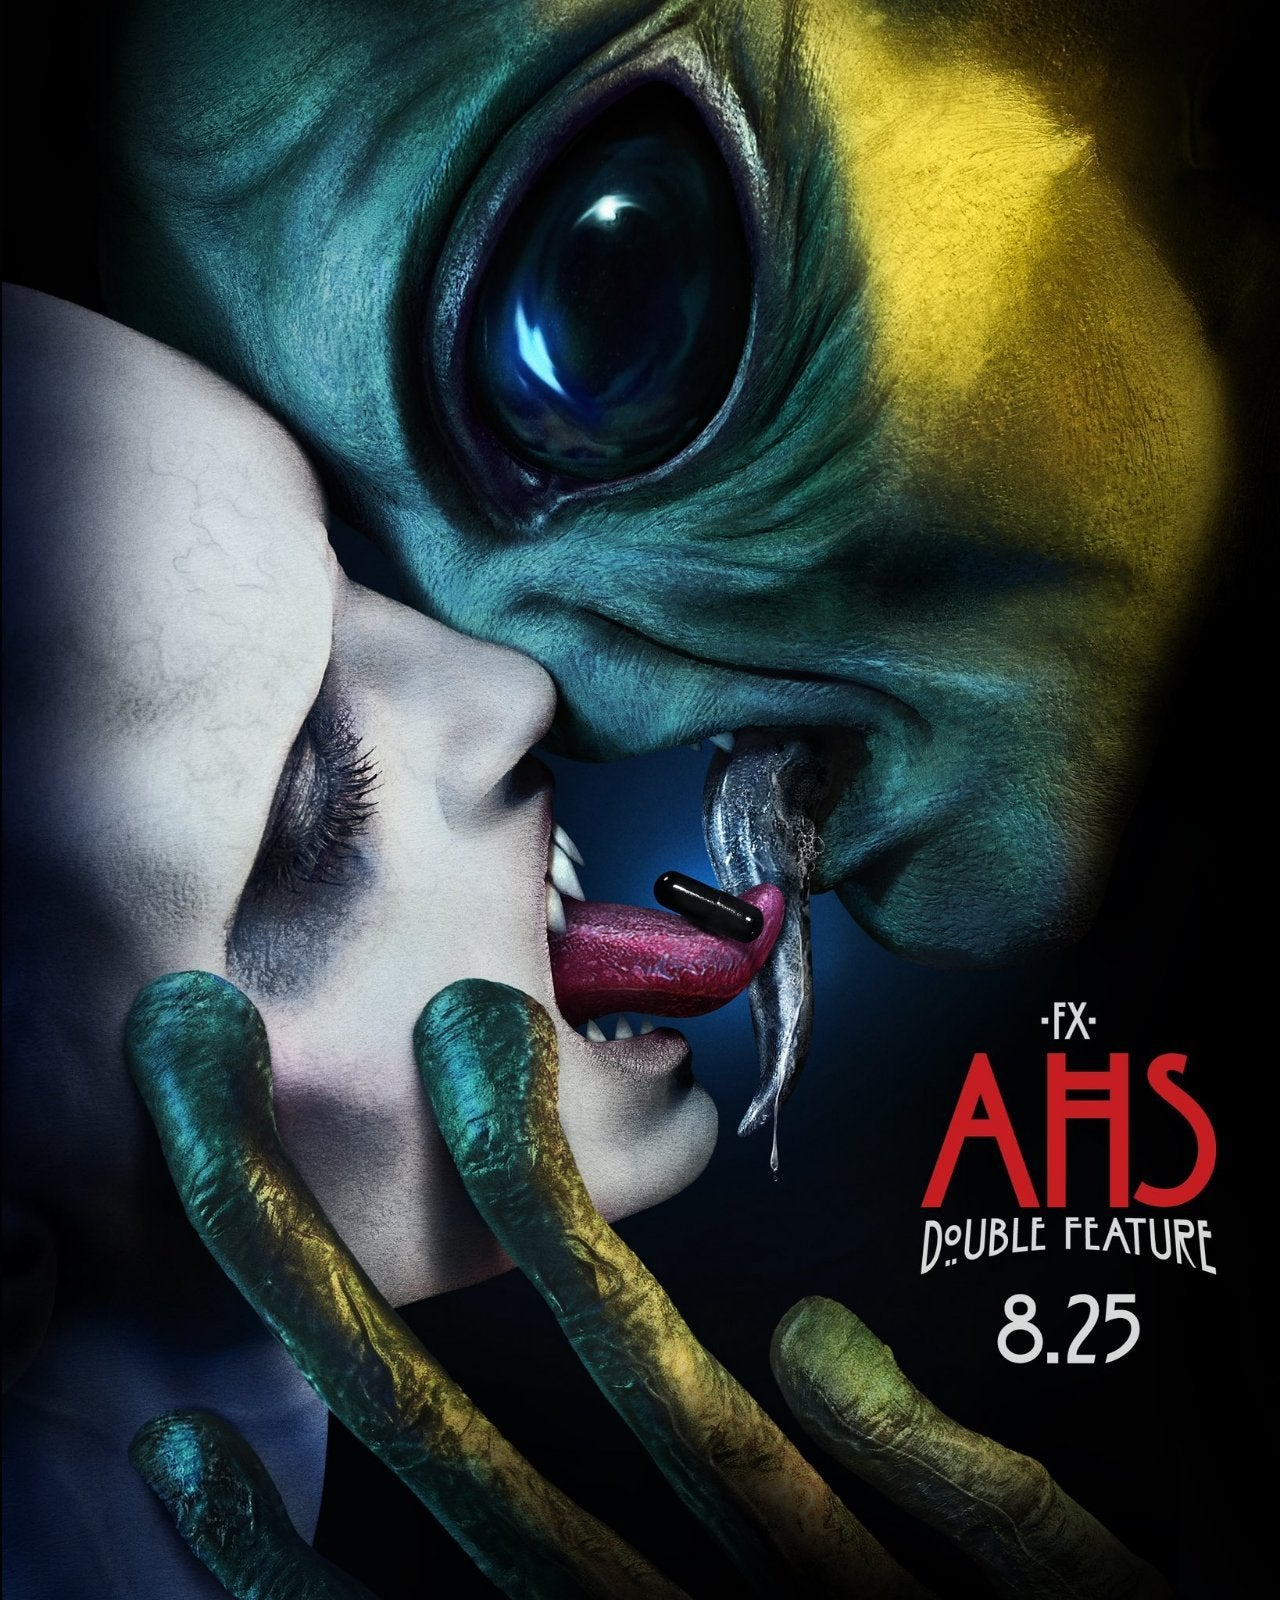 New American Horror Story teaser shows all seasons are